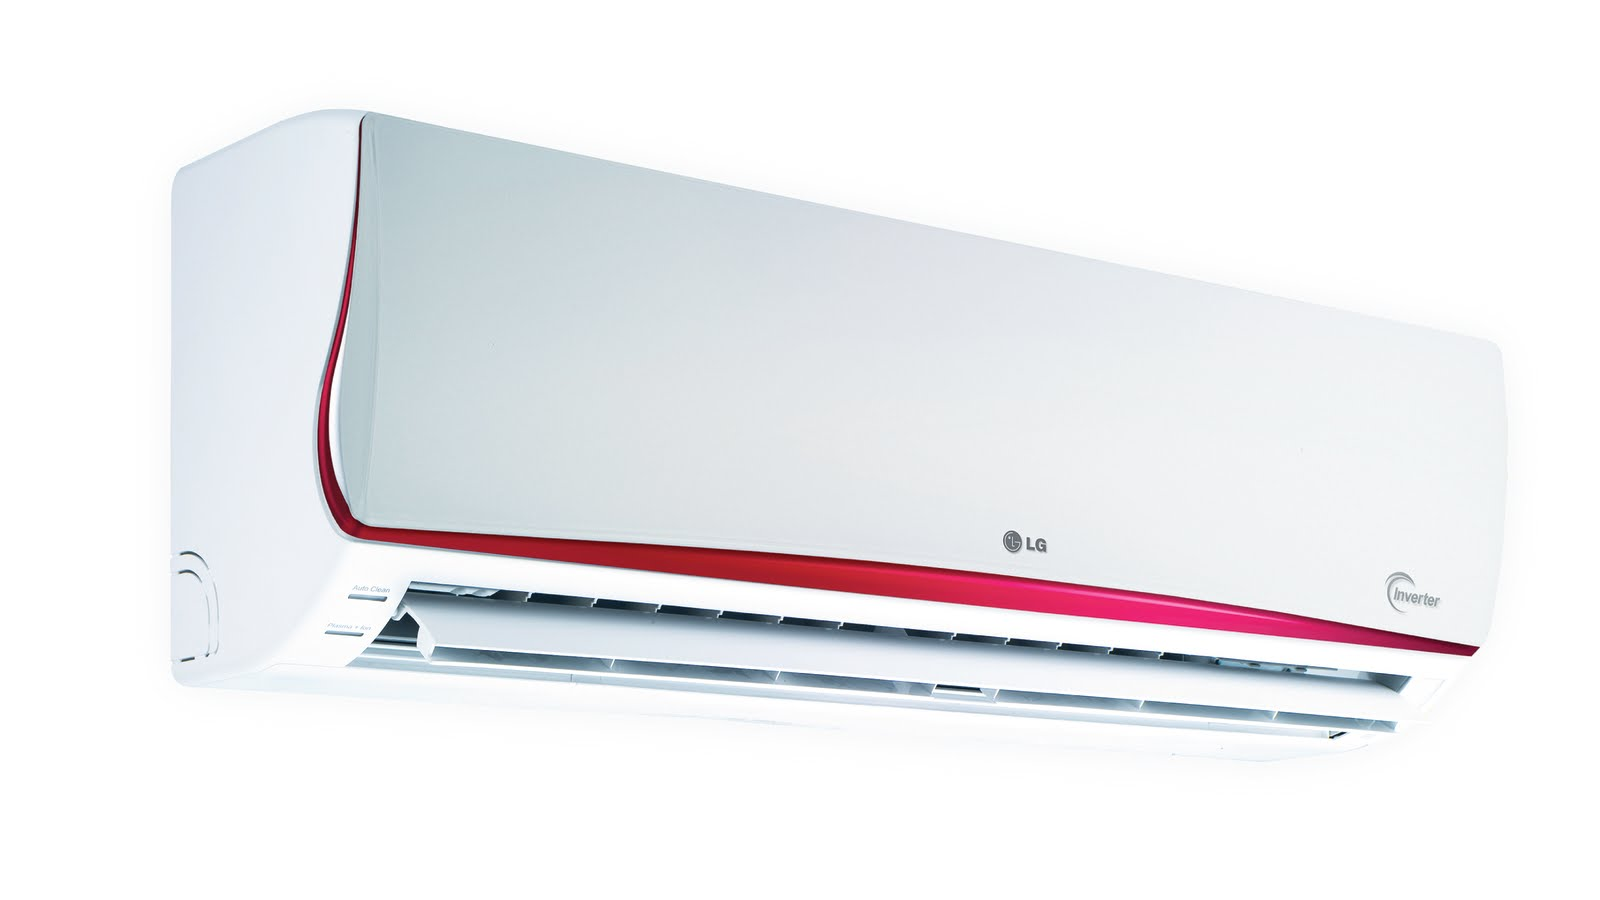 #B01B51 DDV Apparel & Peripheral Gaming Store & Other Item: Rejeki  Best 4973 Lg Split Ac System photos with 1600x900 px on helpvideos.info - Air Conditioners, Air Coolers and more